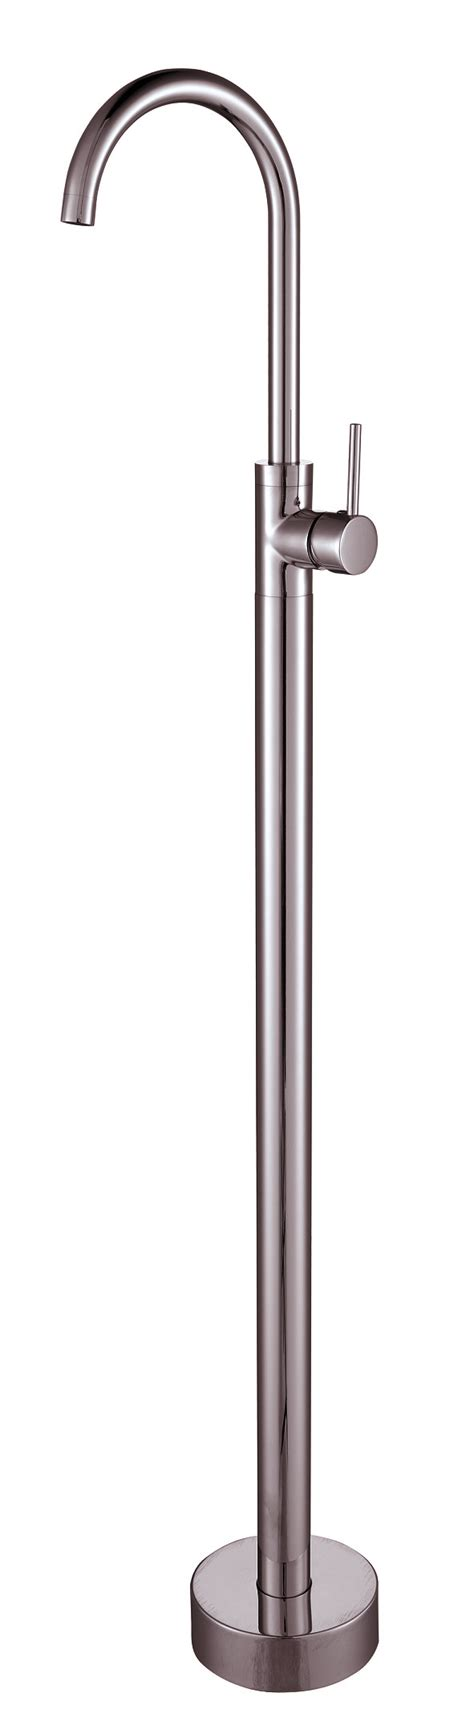 Freestanding Tub Faucets Brushed Nickel by Cagliari Freestanding Bathtub Faucet Brushed Nickel